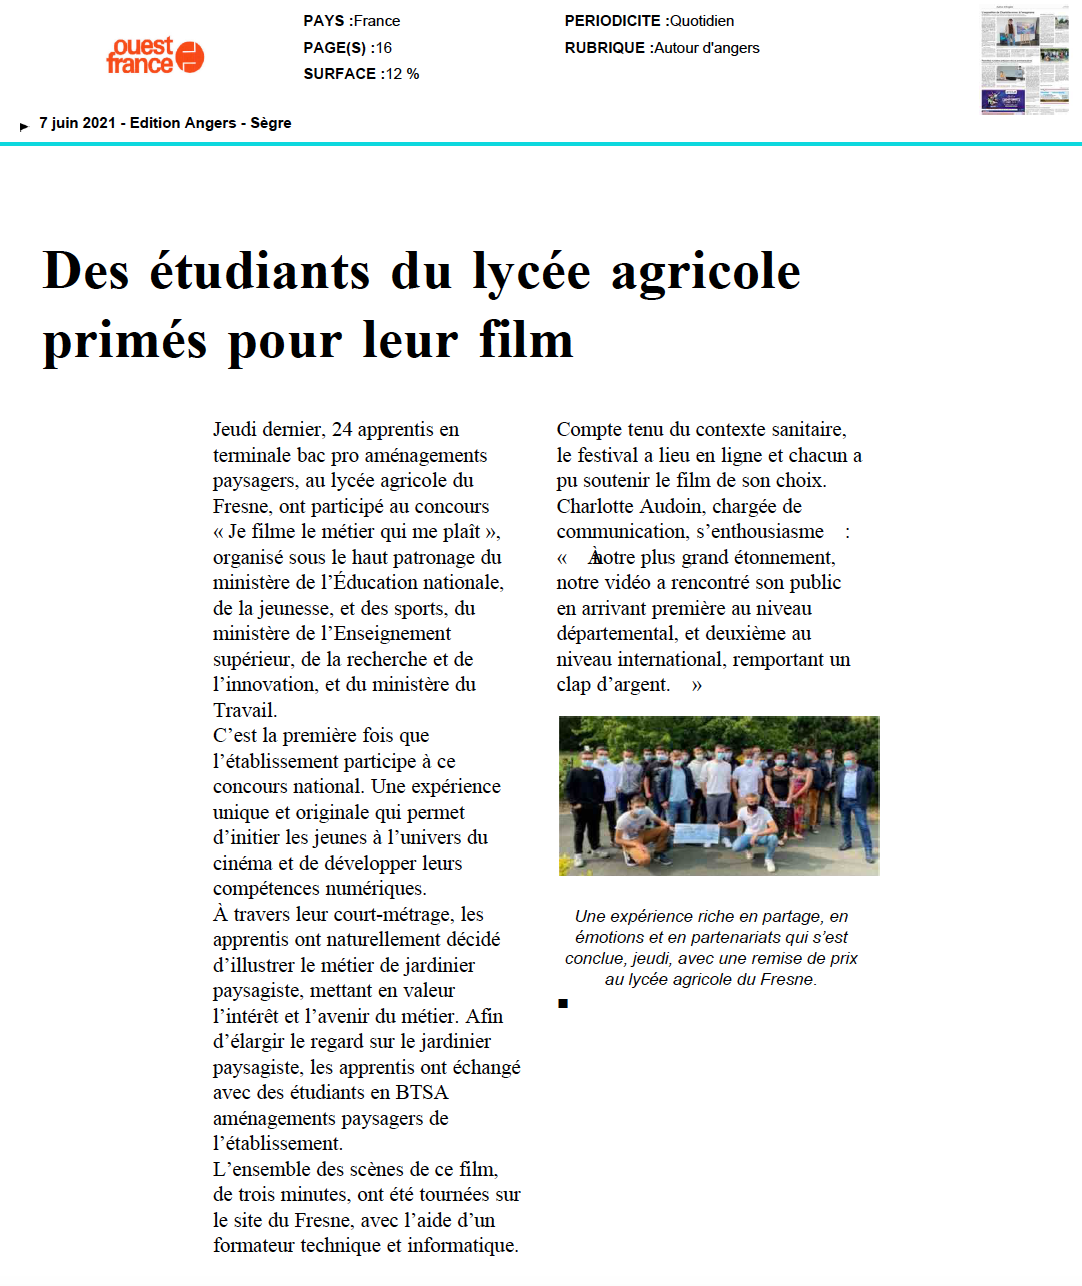 Ouest France - 07/06/2021